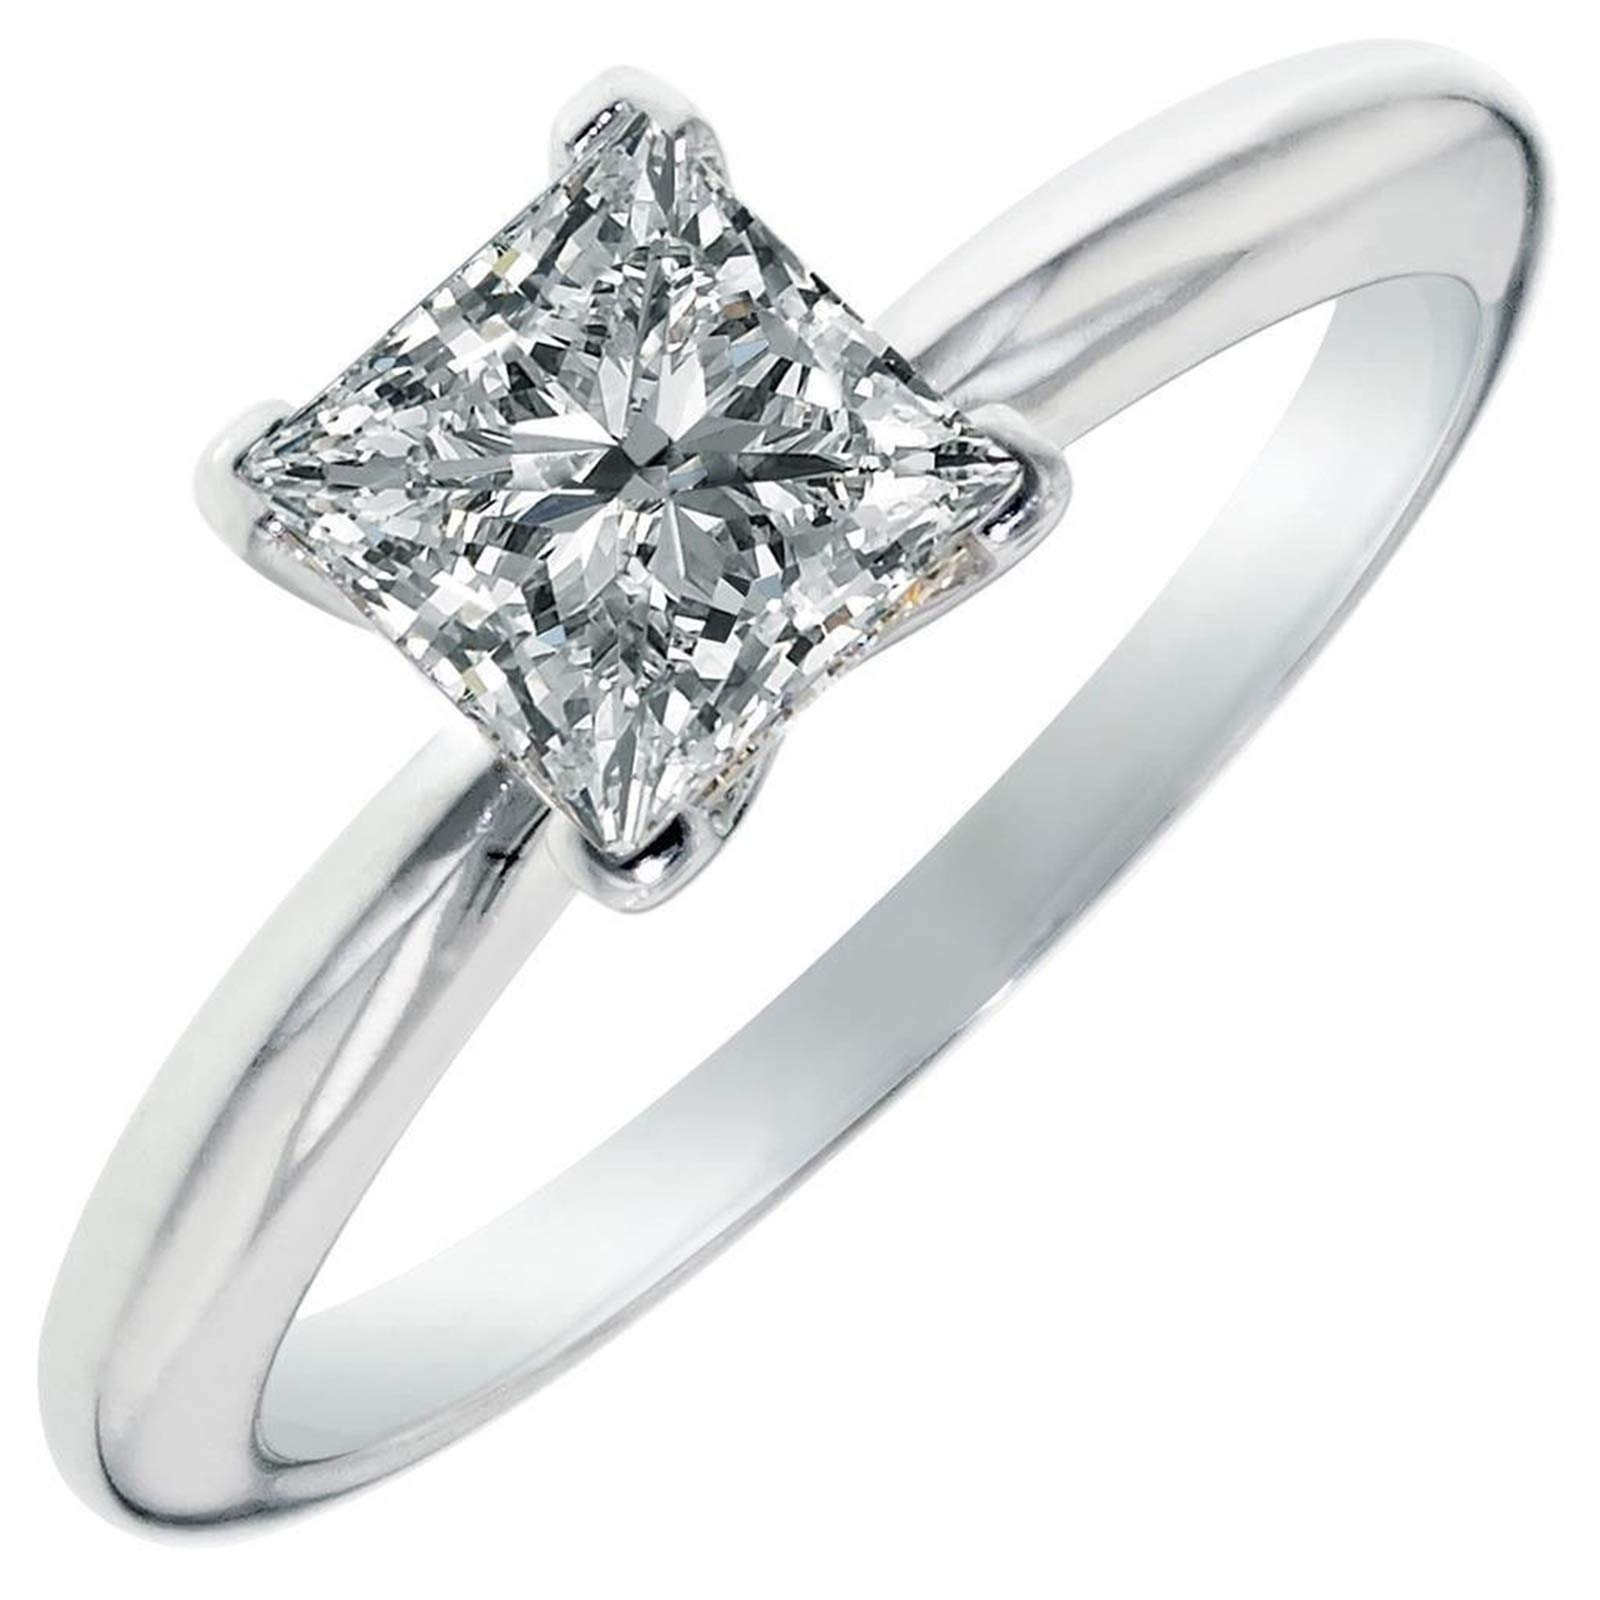 2.9ct Brilliant Princess Cut Solitaire Highest Quality Lab Created White Sapphire Ideal VVS1 D 4-Prong Engagement Wedding Bridal Promise Anniversary Ring Solid Real 14k White Gold for Women